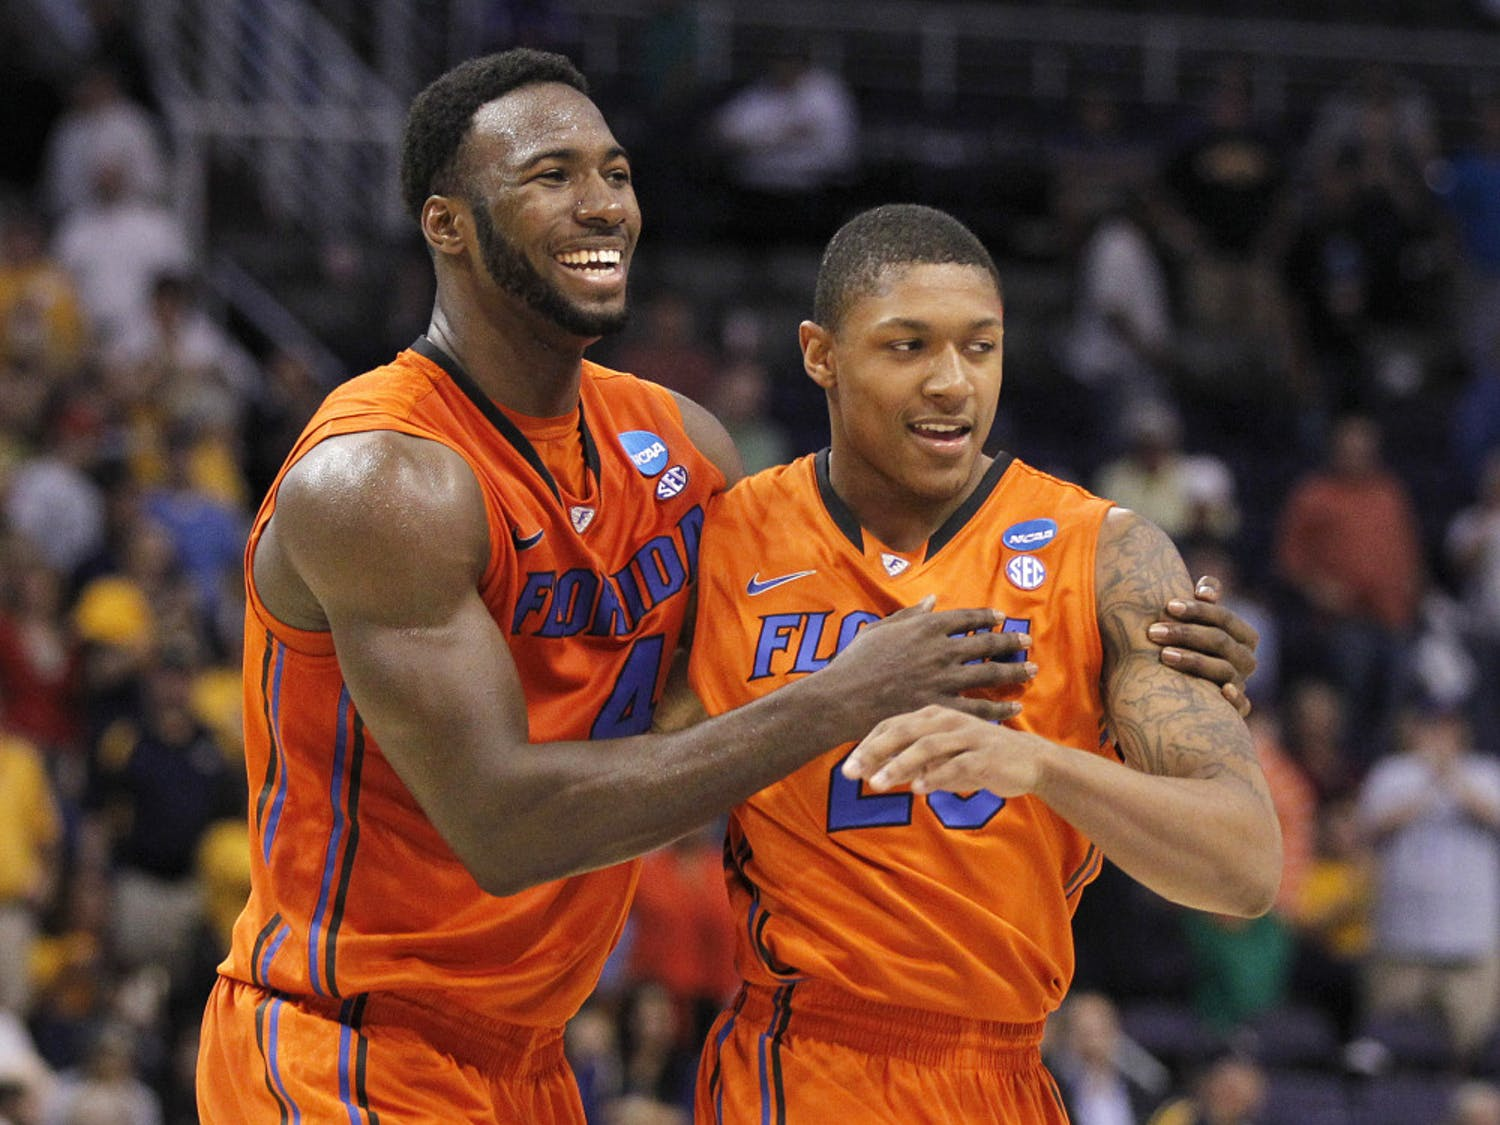 Florida center Patric Young embraces guard Brad Beal during the team's Sweet 16 meeting with Marquette in 2012.